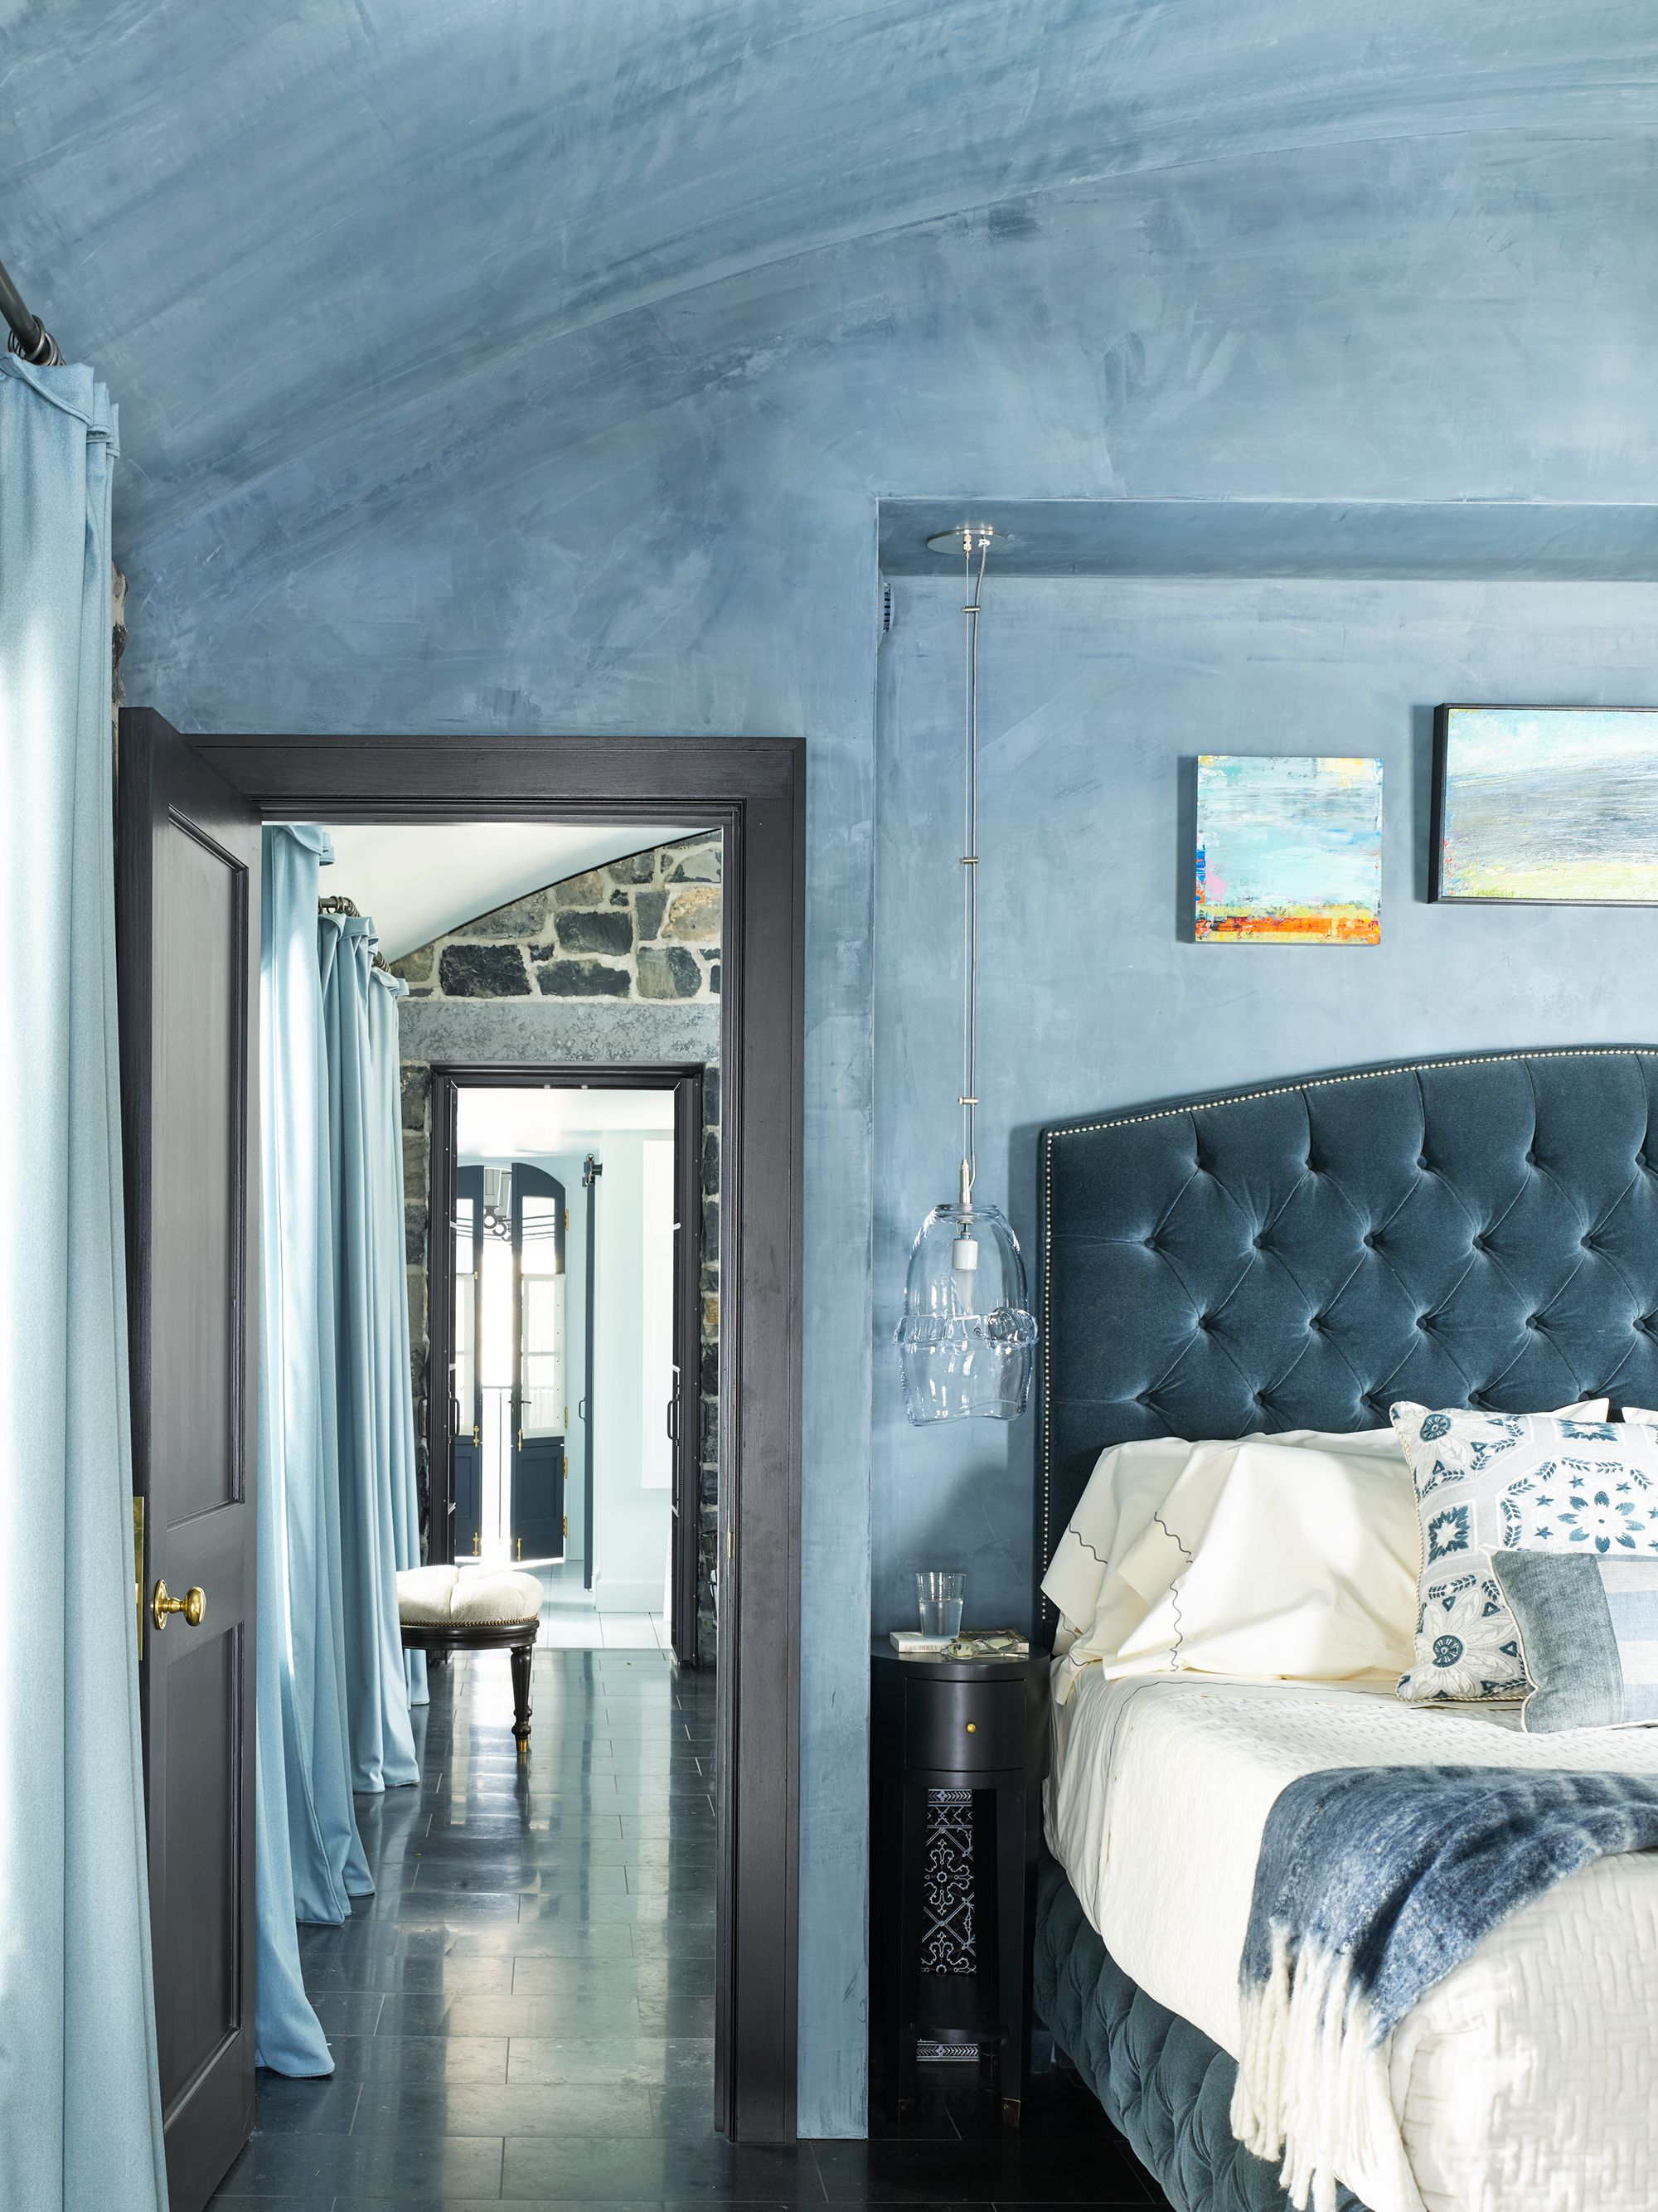 20 Bedroom Colors That'll Make You Wake Up Happier in 2019